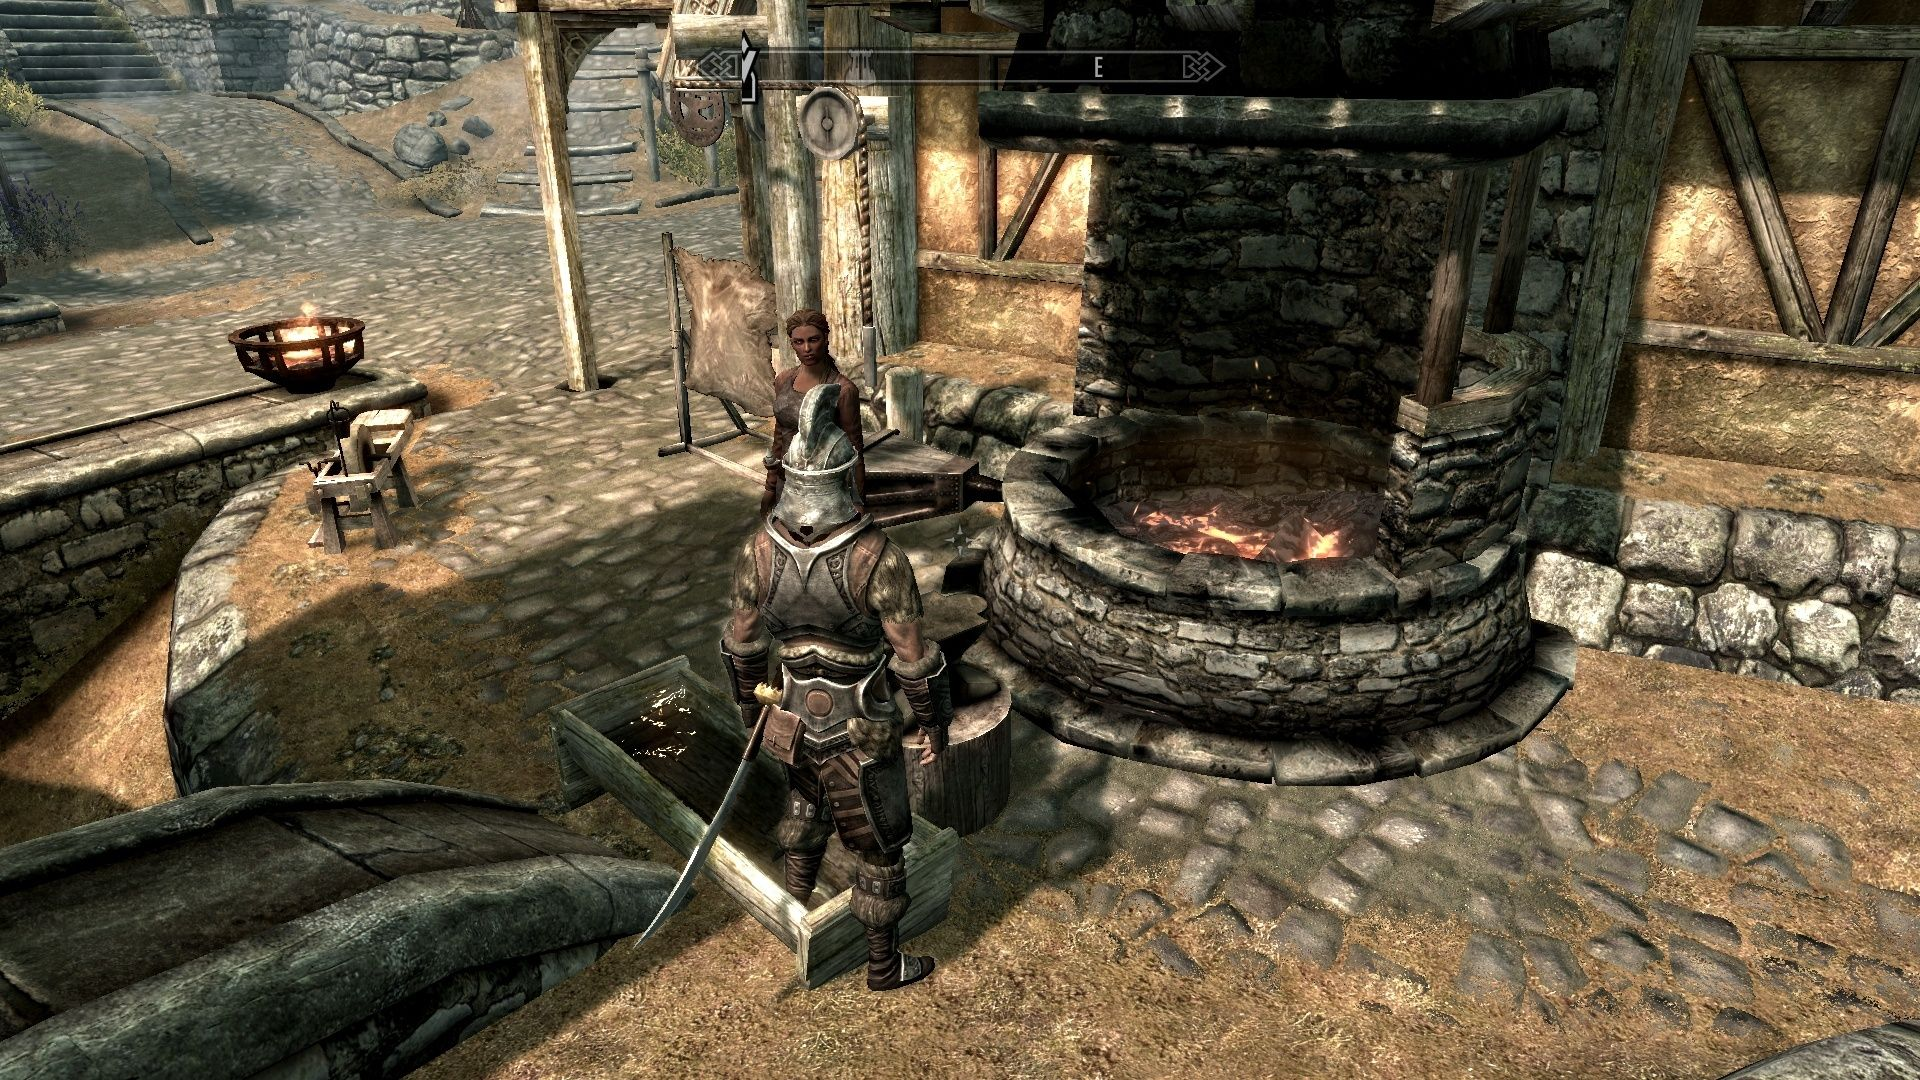 blacksmith forge skyrim - photo #1